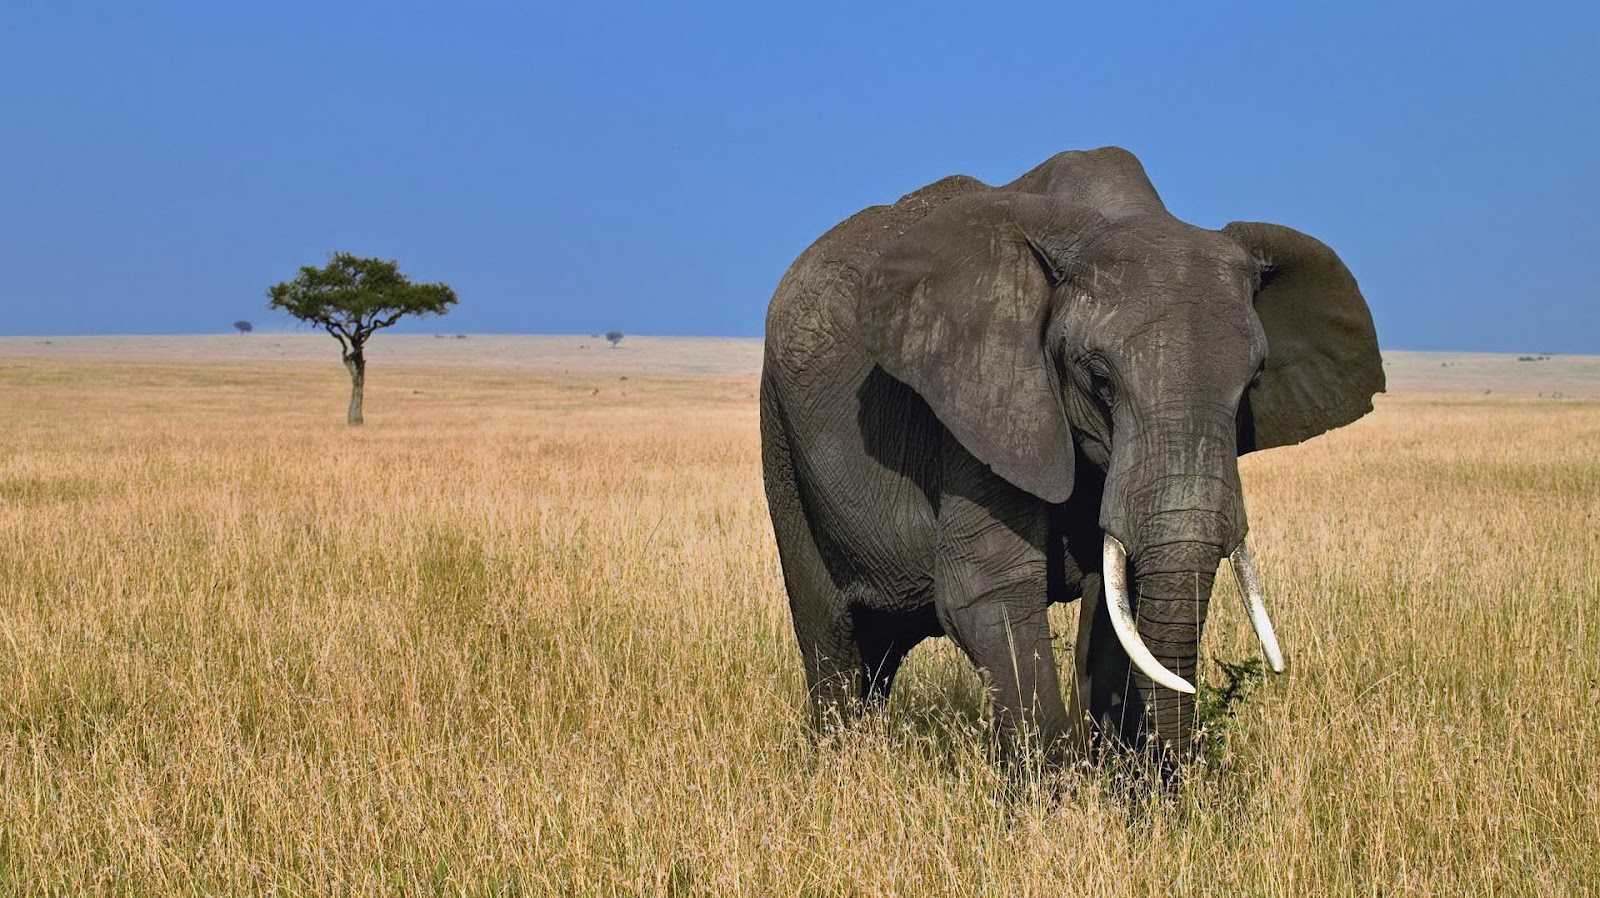 HD Elephants Wallpapers and Photos HD Animals Wallpapers 1600x898